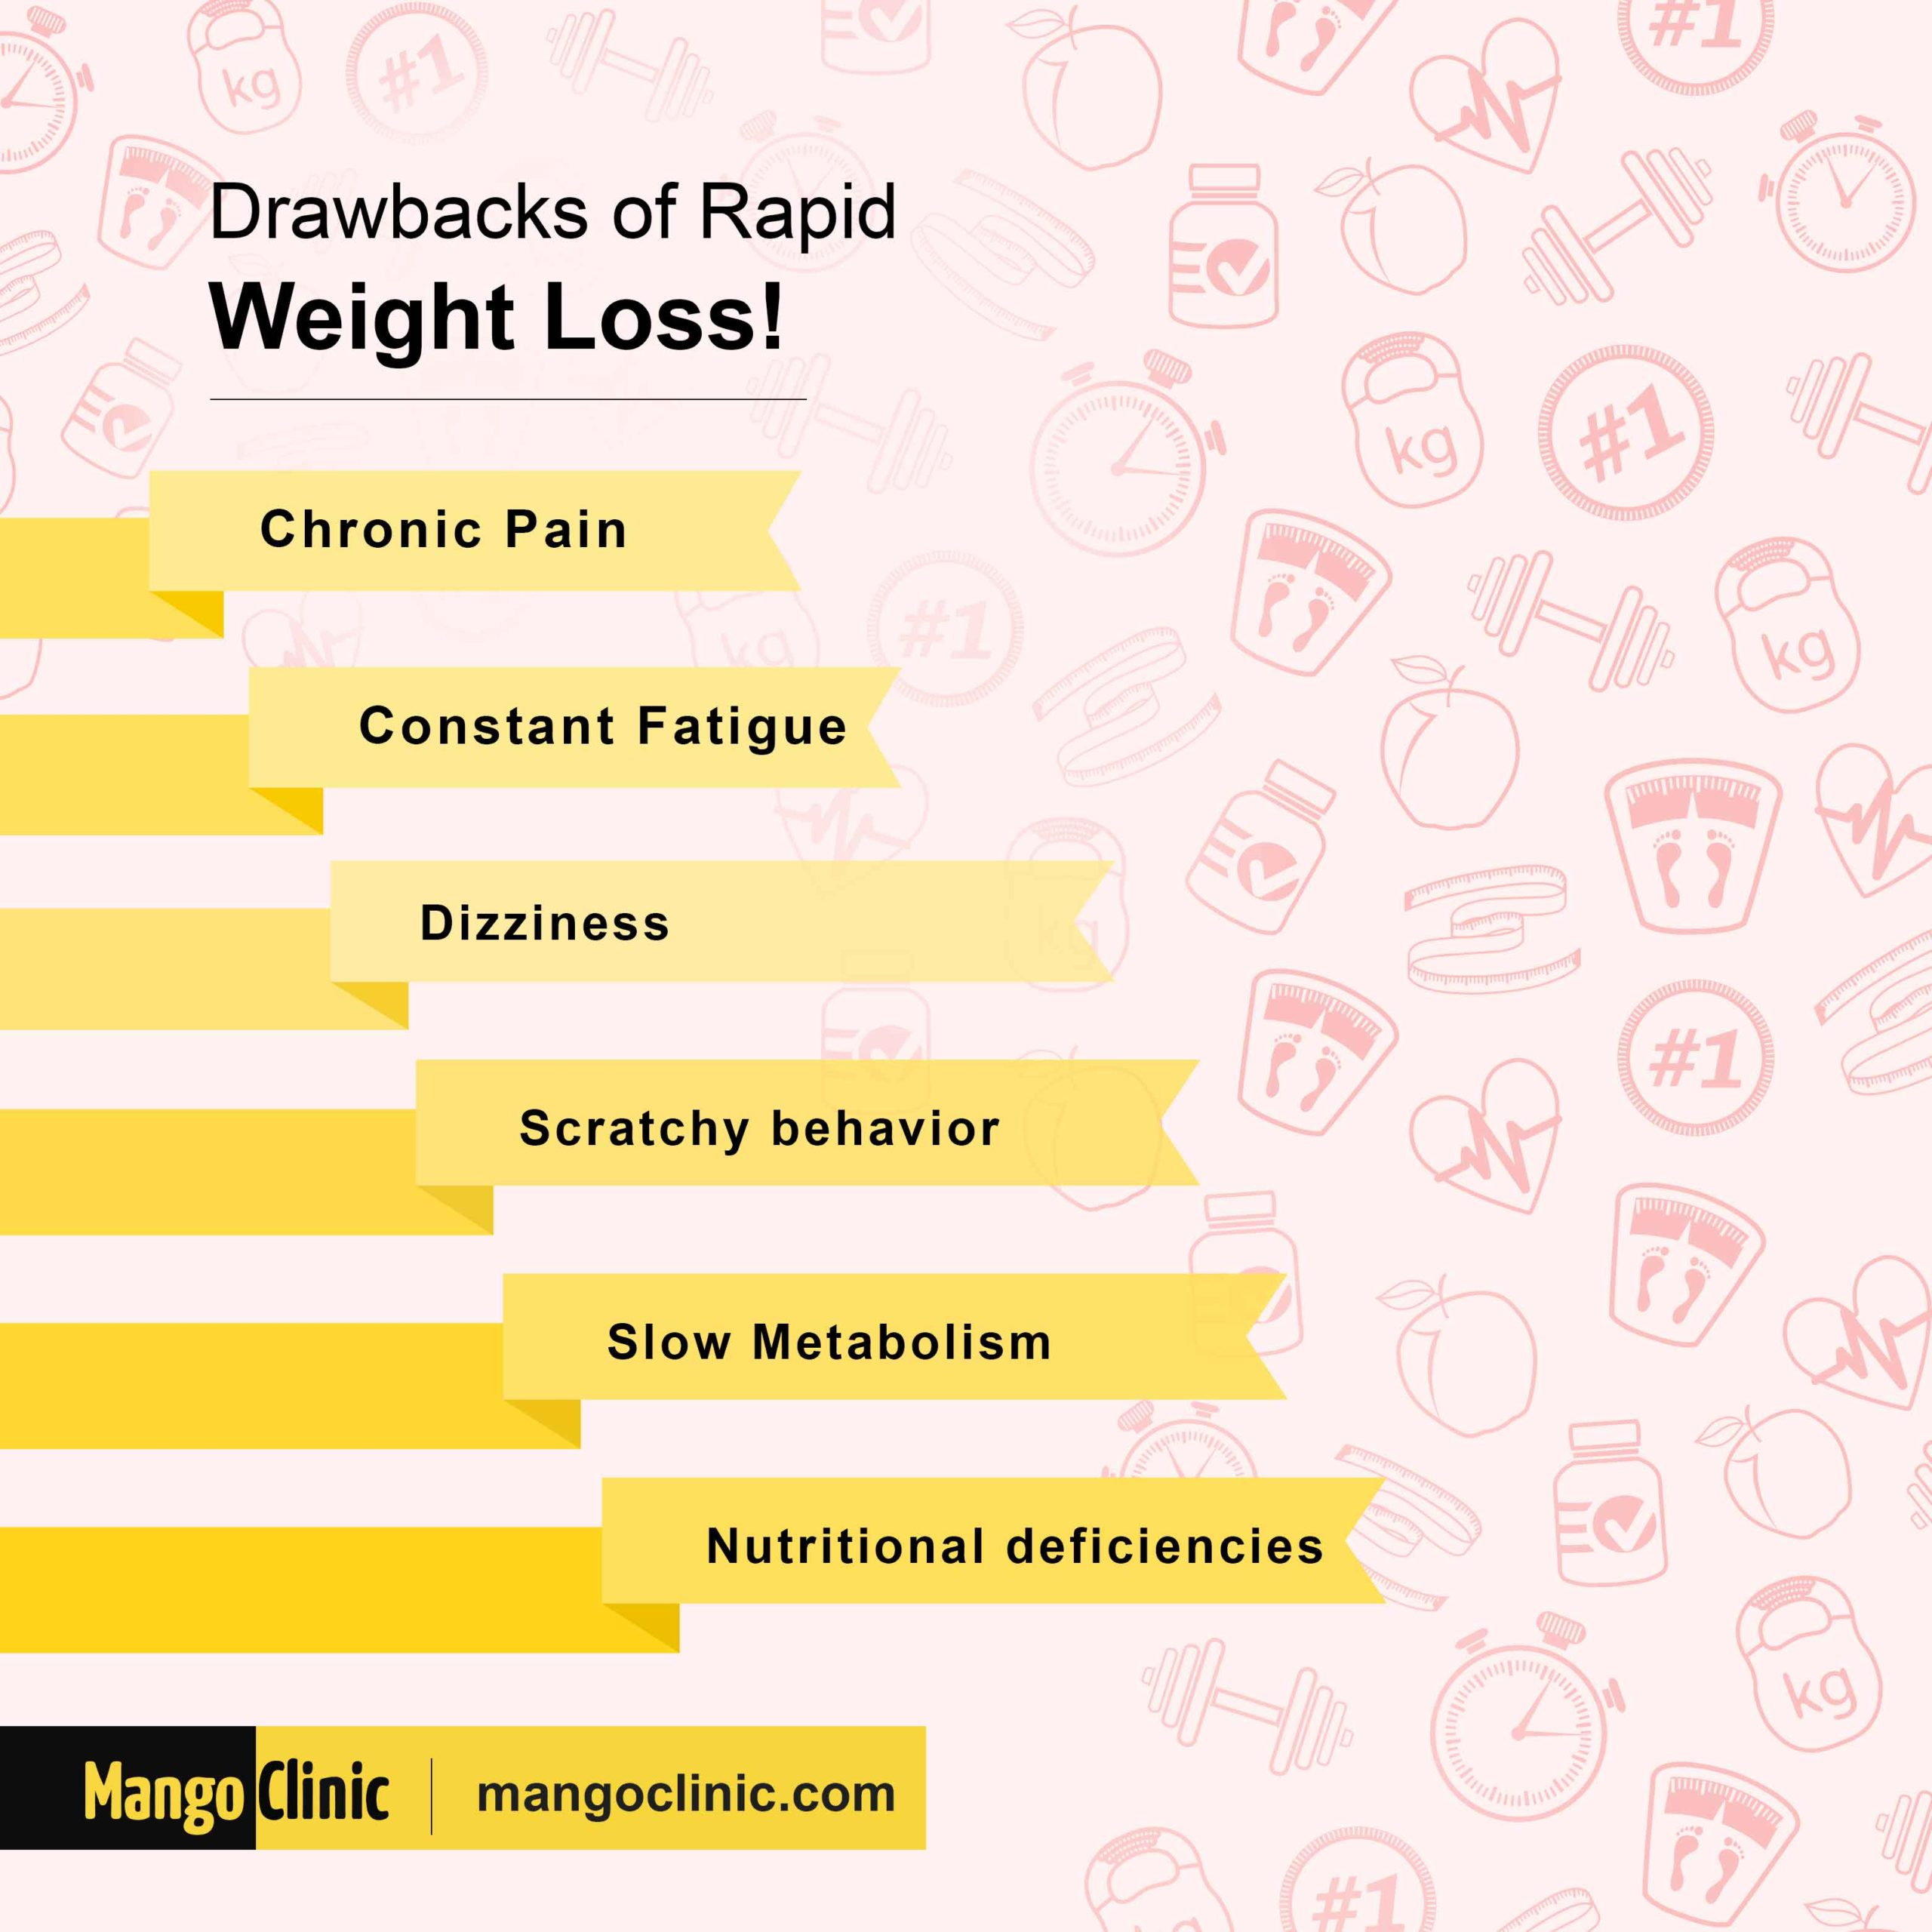 Drawbacks of Rapid Weight Loss